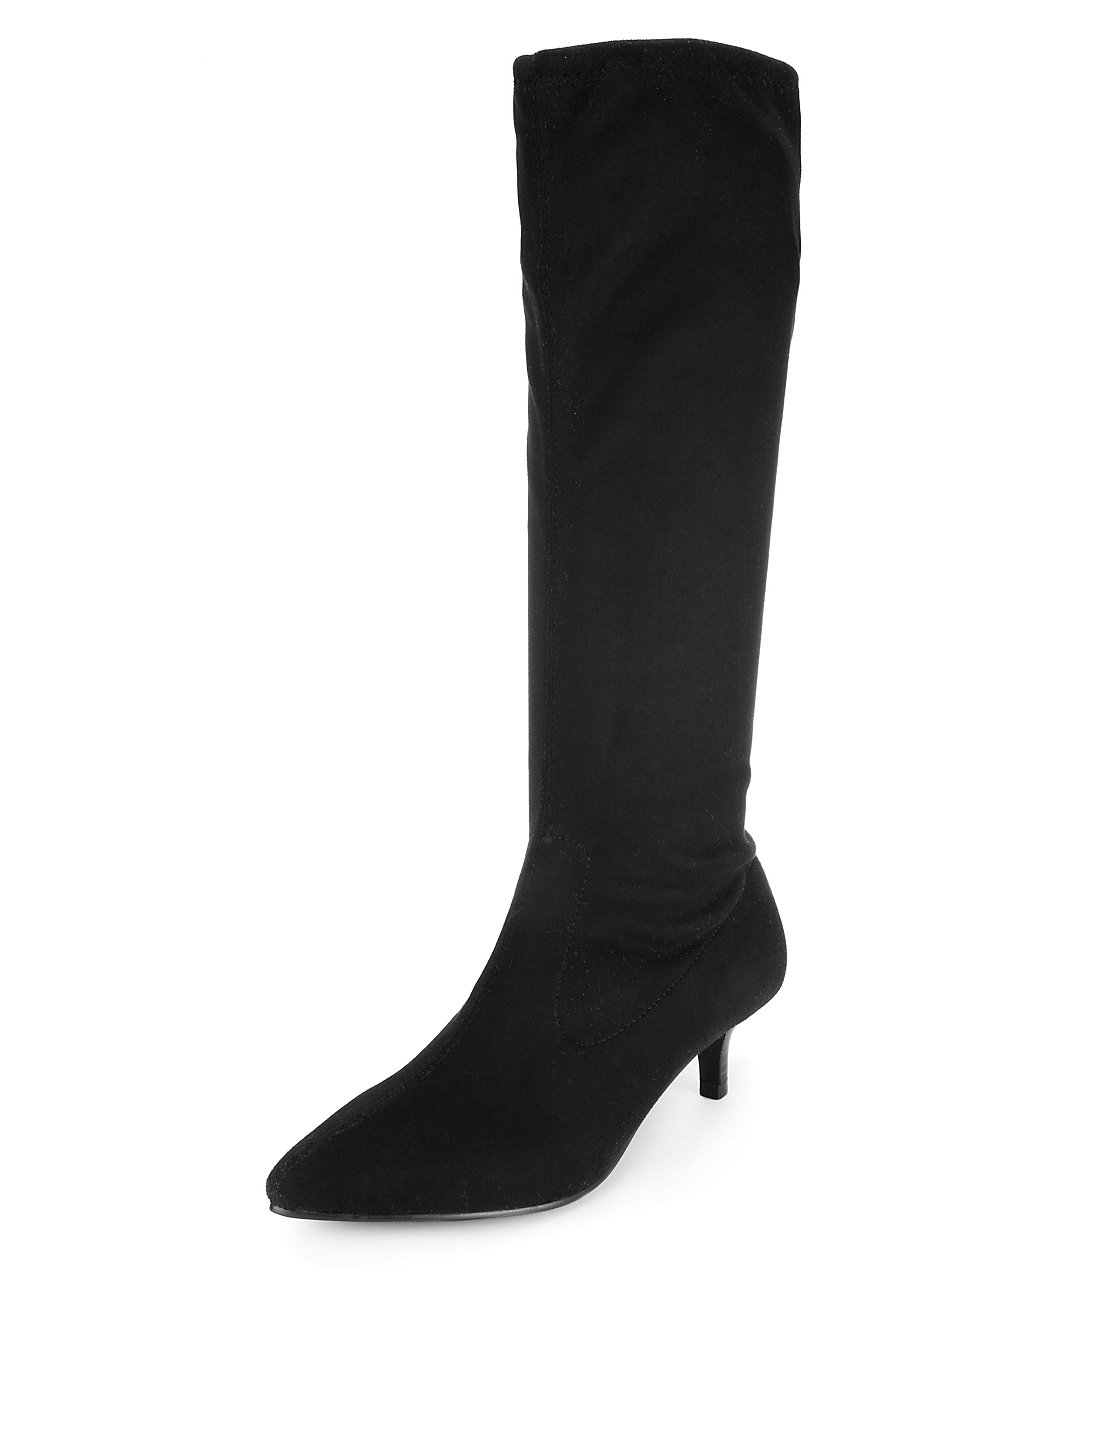 Kitten Heel Boots Uk